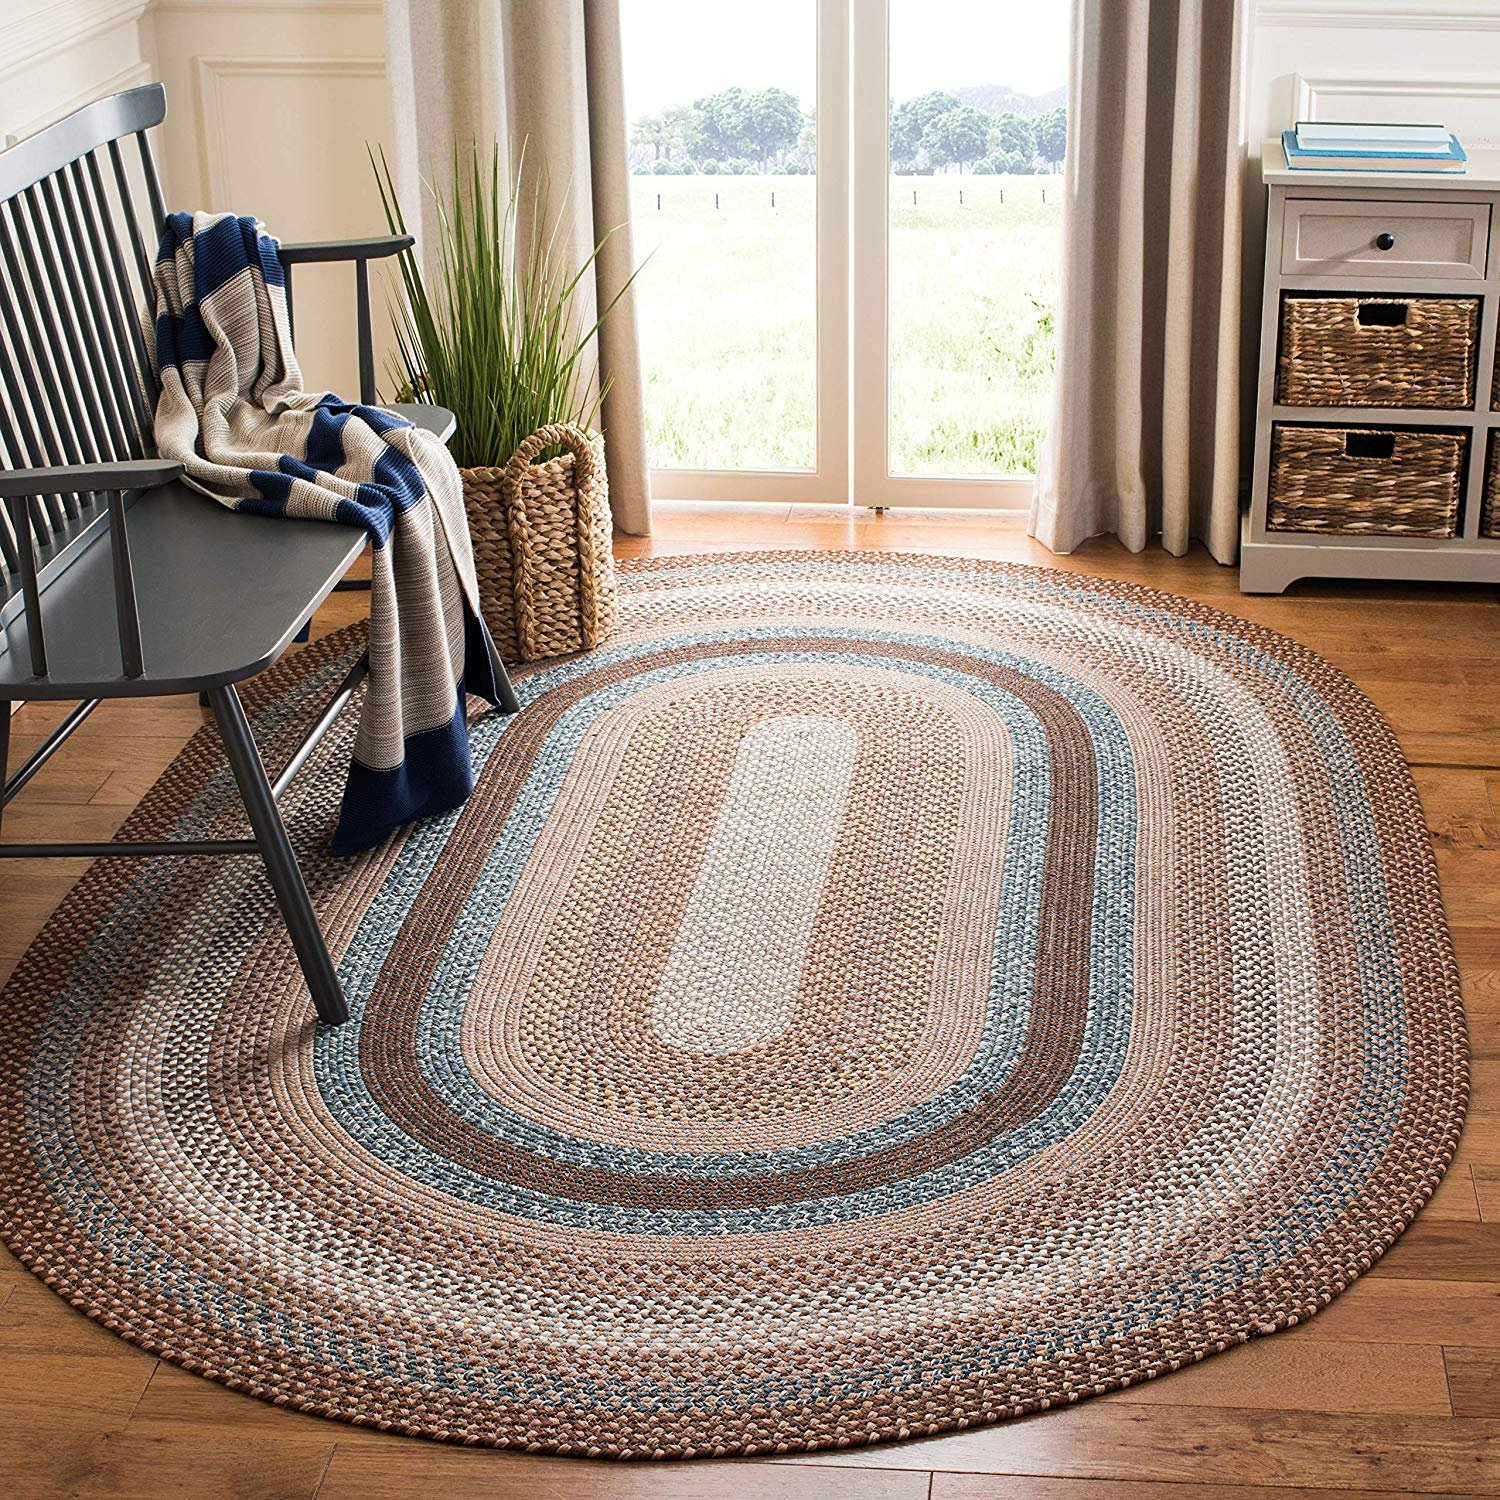 Safavieh Braided Collection Brd313a Hand Woven Brown And Multi Oval Area Rug 9 X 12 Oval Walmart Com Walmart Com